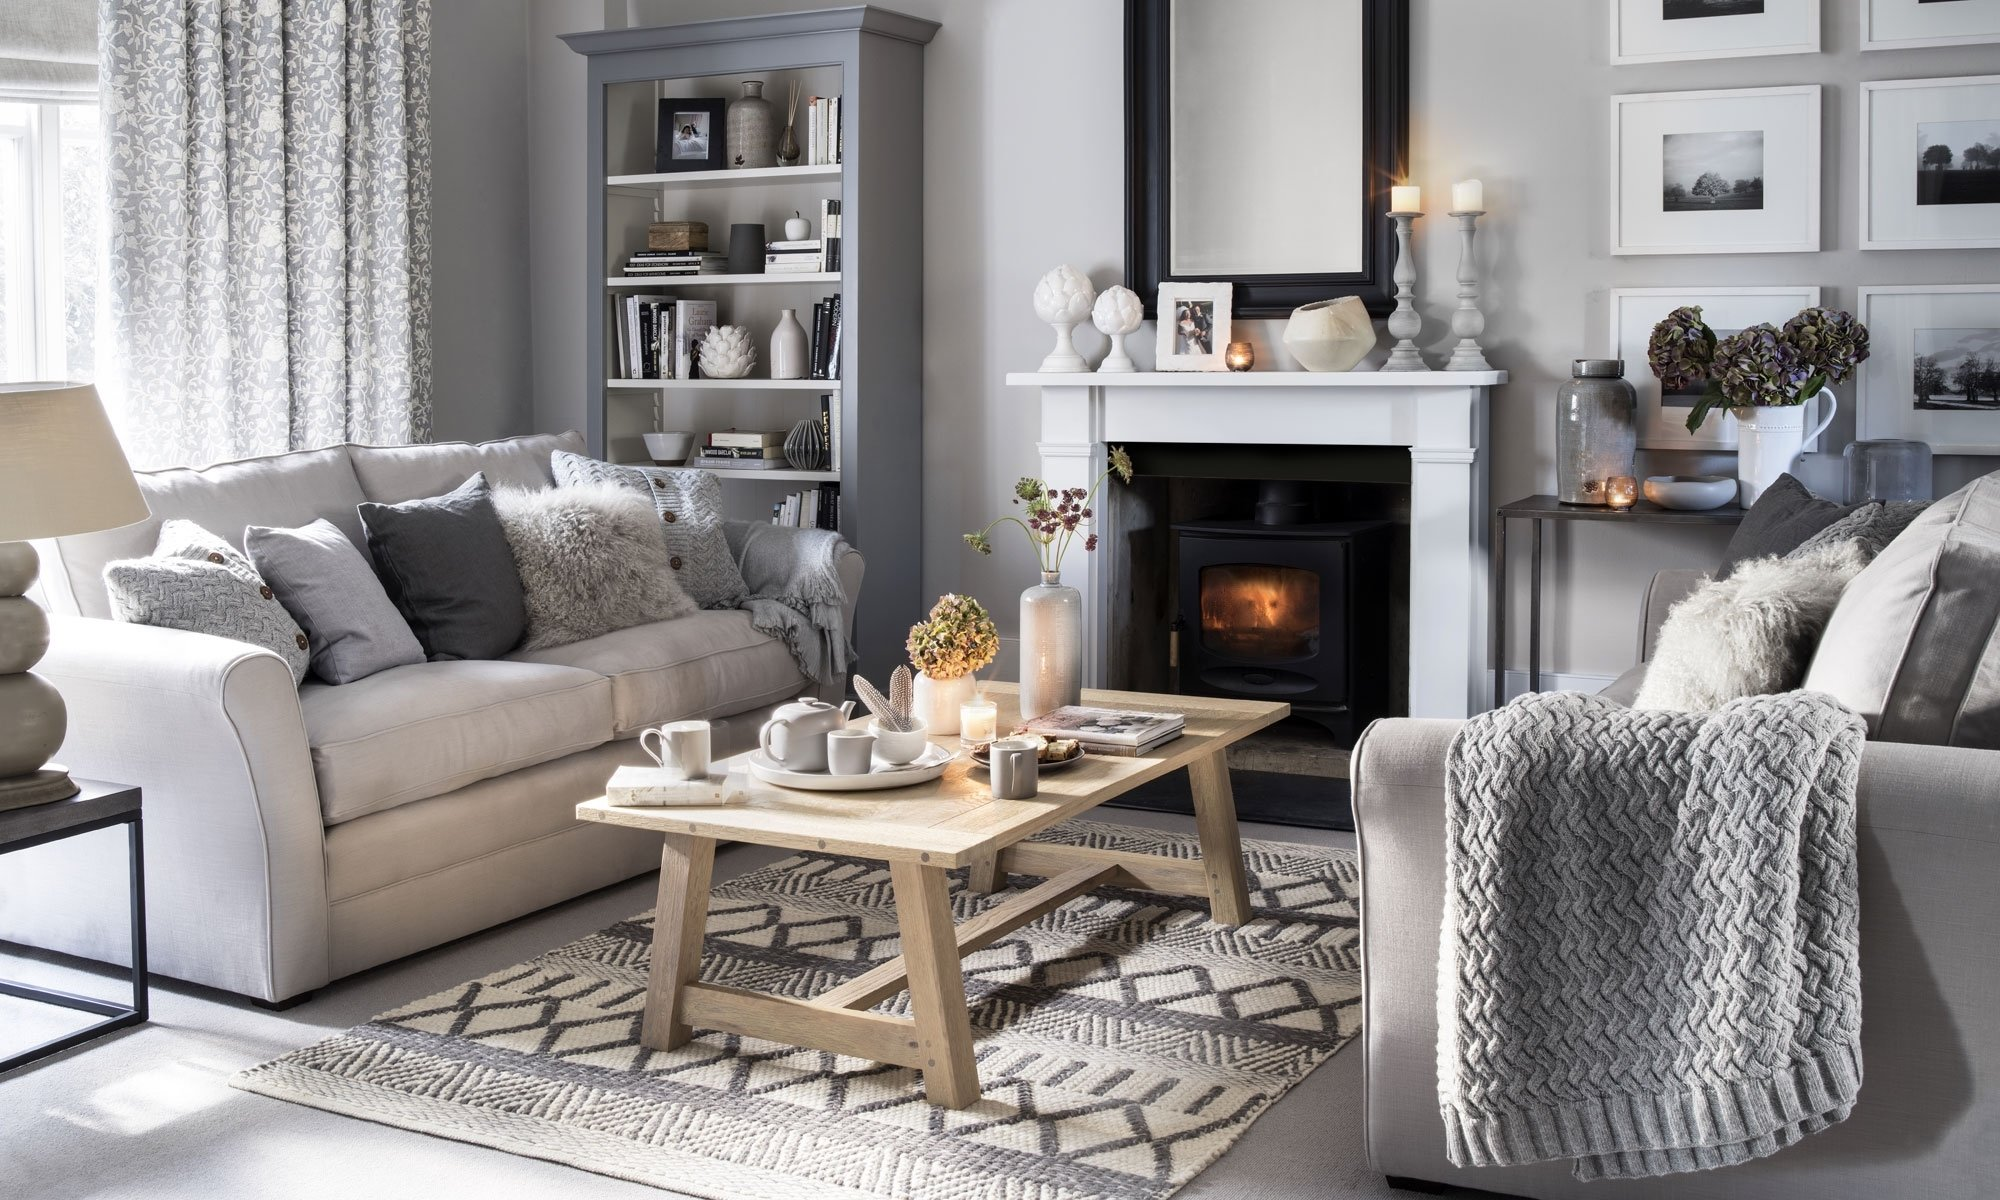 10 Ideal Decor Ideas For Living Room living room ideas designs and inspiration ideal home 2